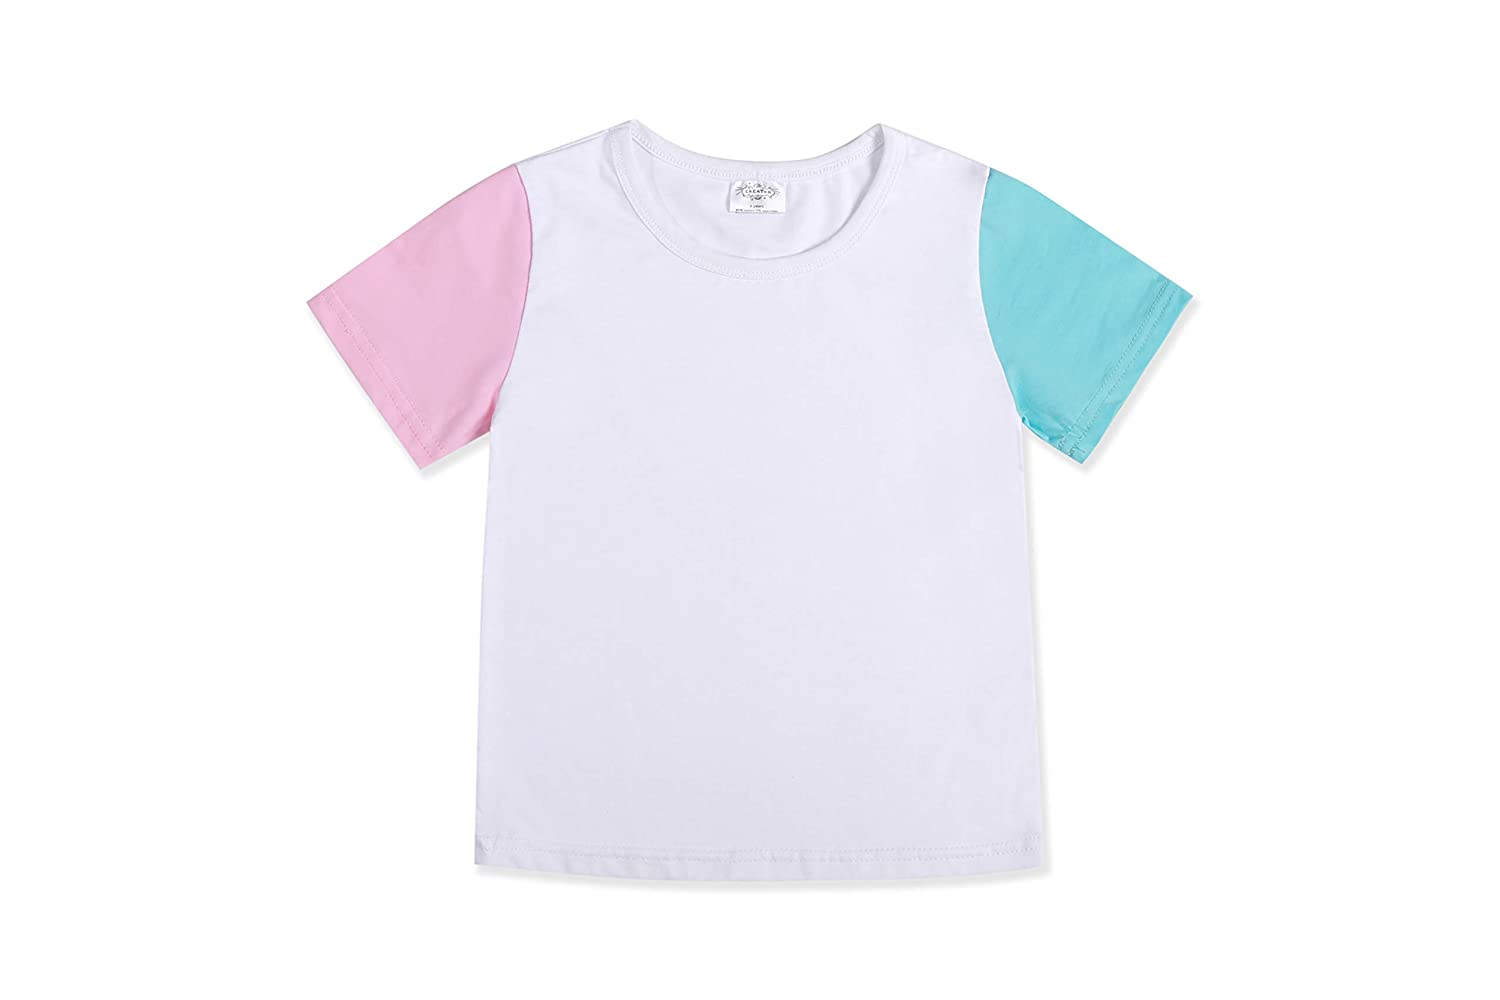 CREATOR Toddler Baby Girls Boys Short Sleeve Shirts Raglan Shirt Baseball Tee Cotton T-Shirt